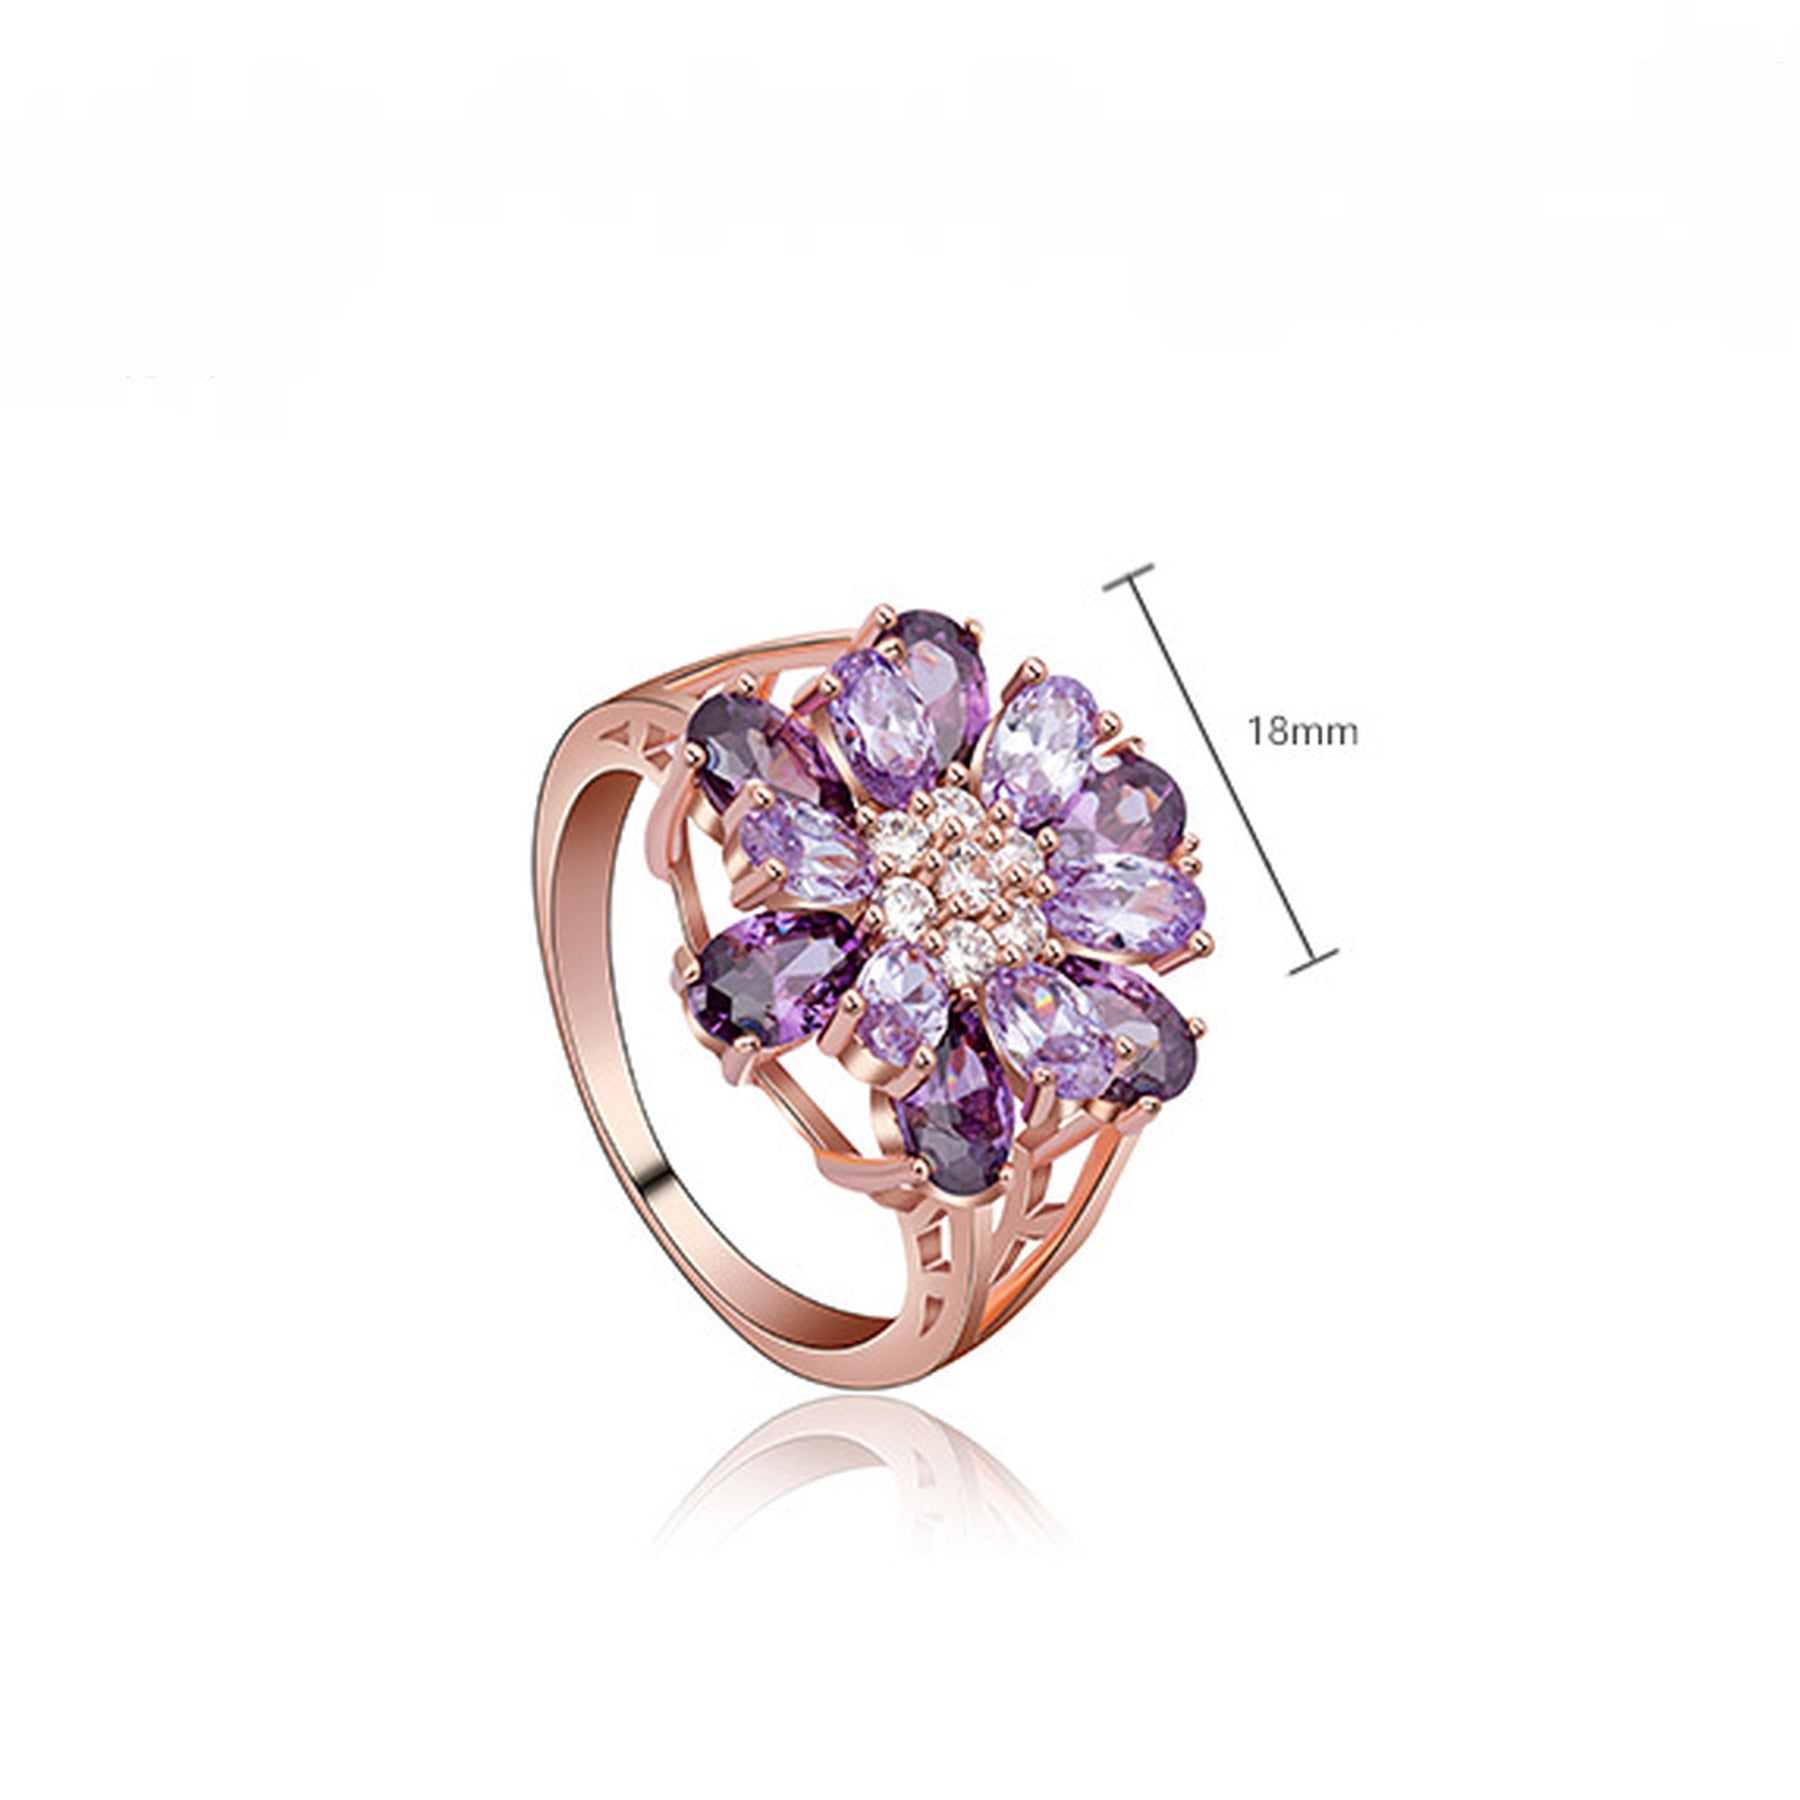 Simulated Amethyst Flower Ring - GRACE BOUTIQUE UK women jewellery necklace earring bracelet ring broach scarf wrap shawl accessories